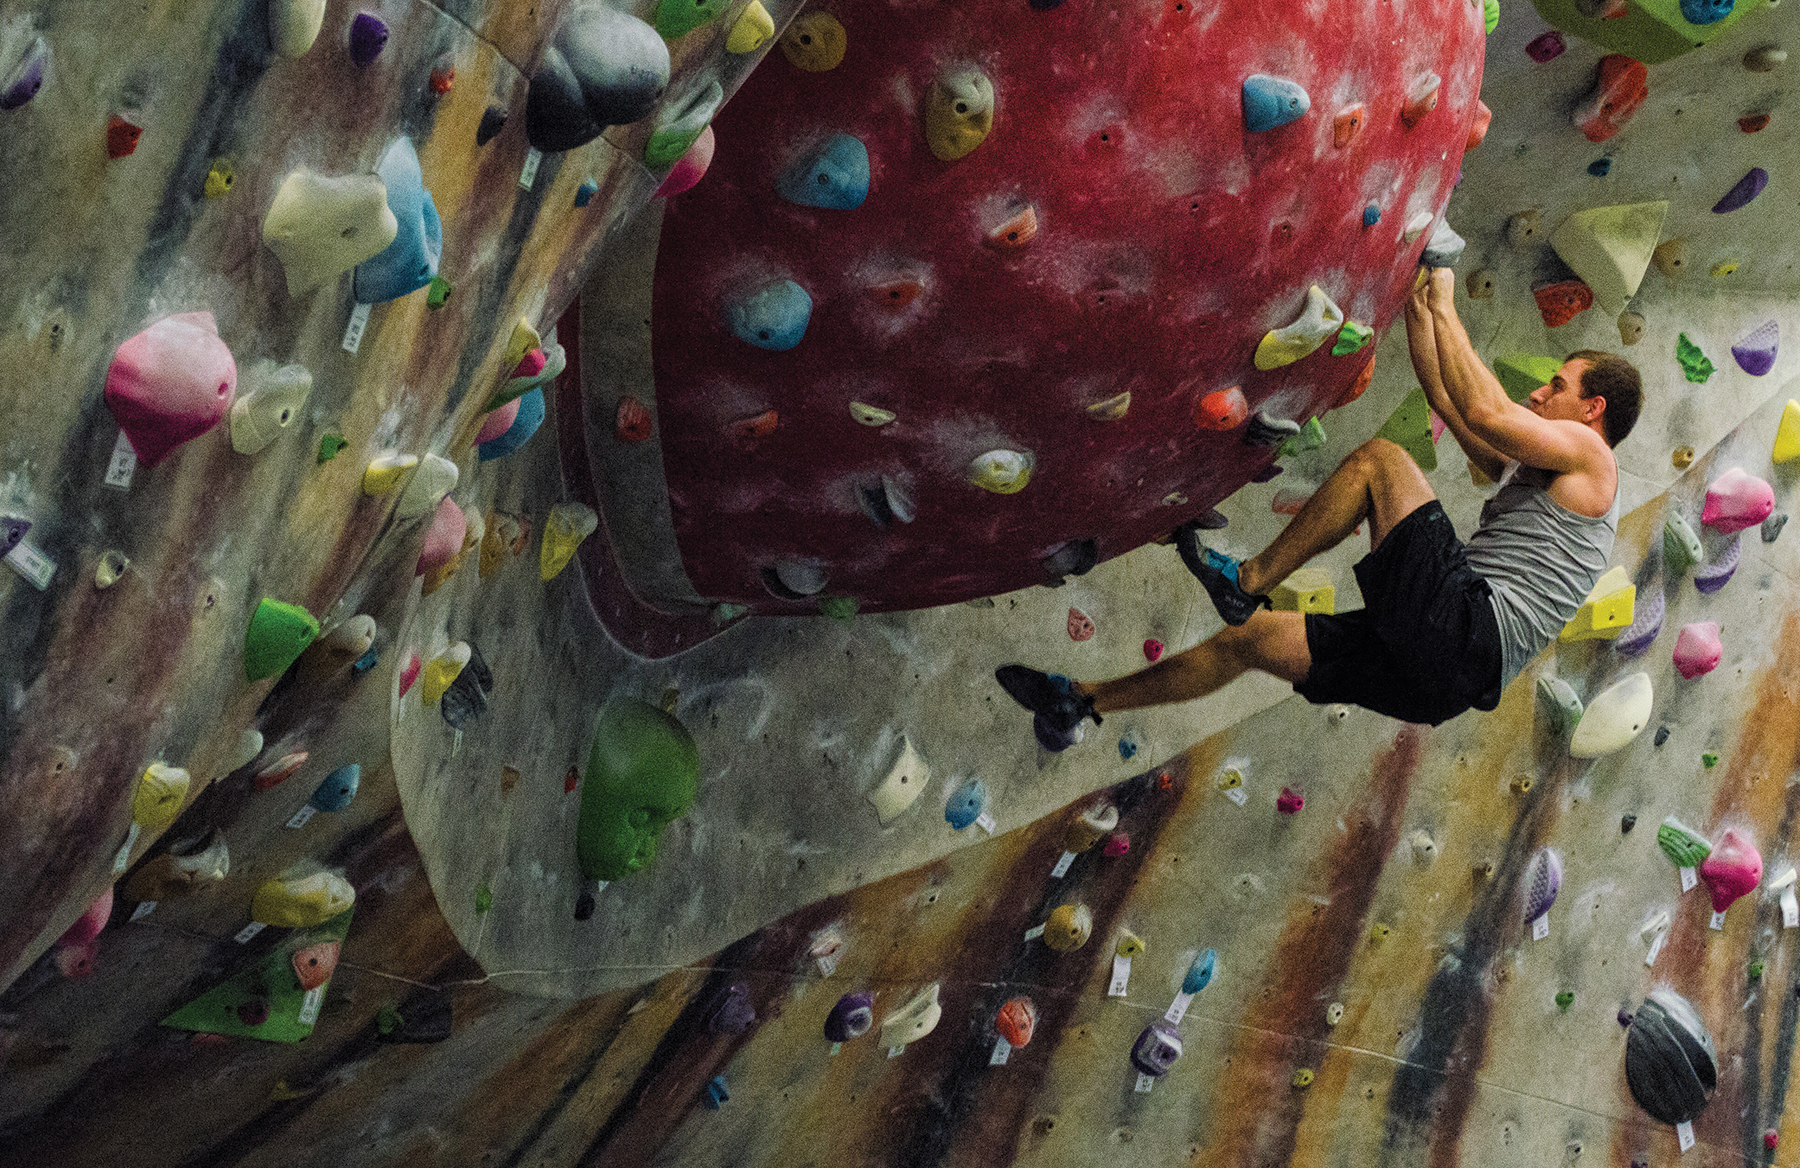 Josh Woods on the bouldering Eye Wall at Climb So iLL.